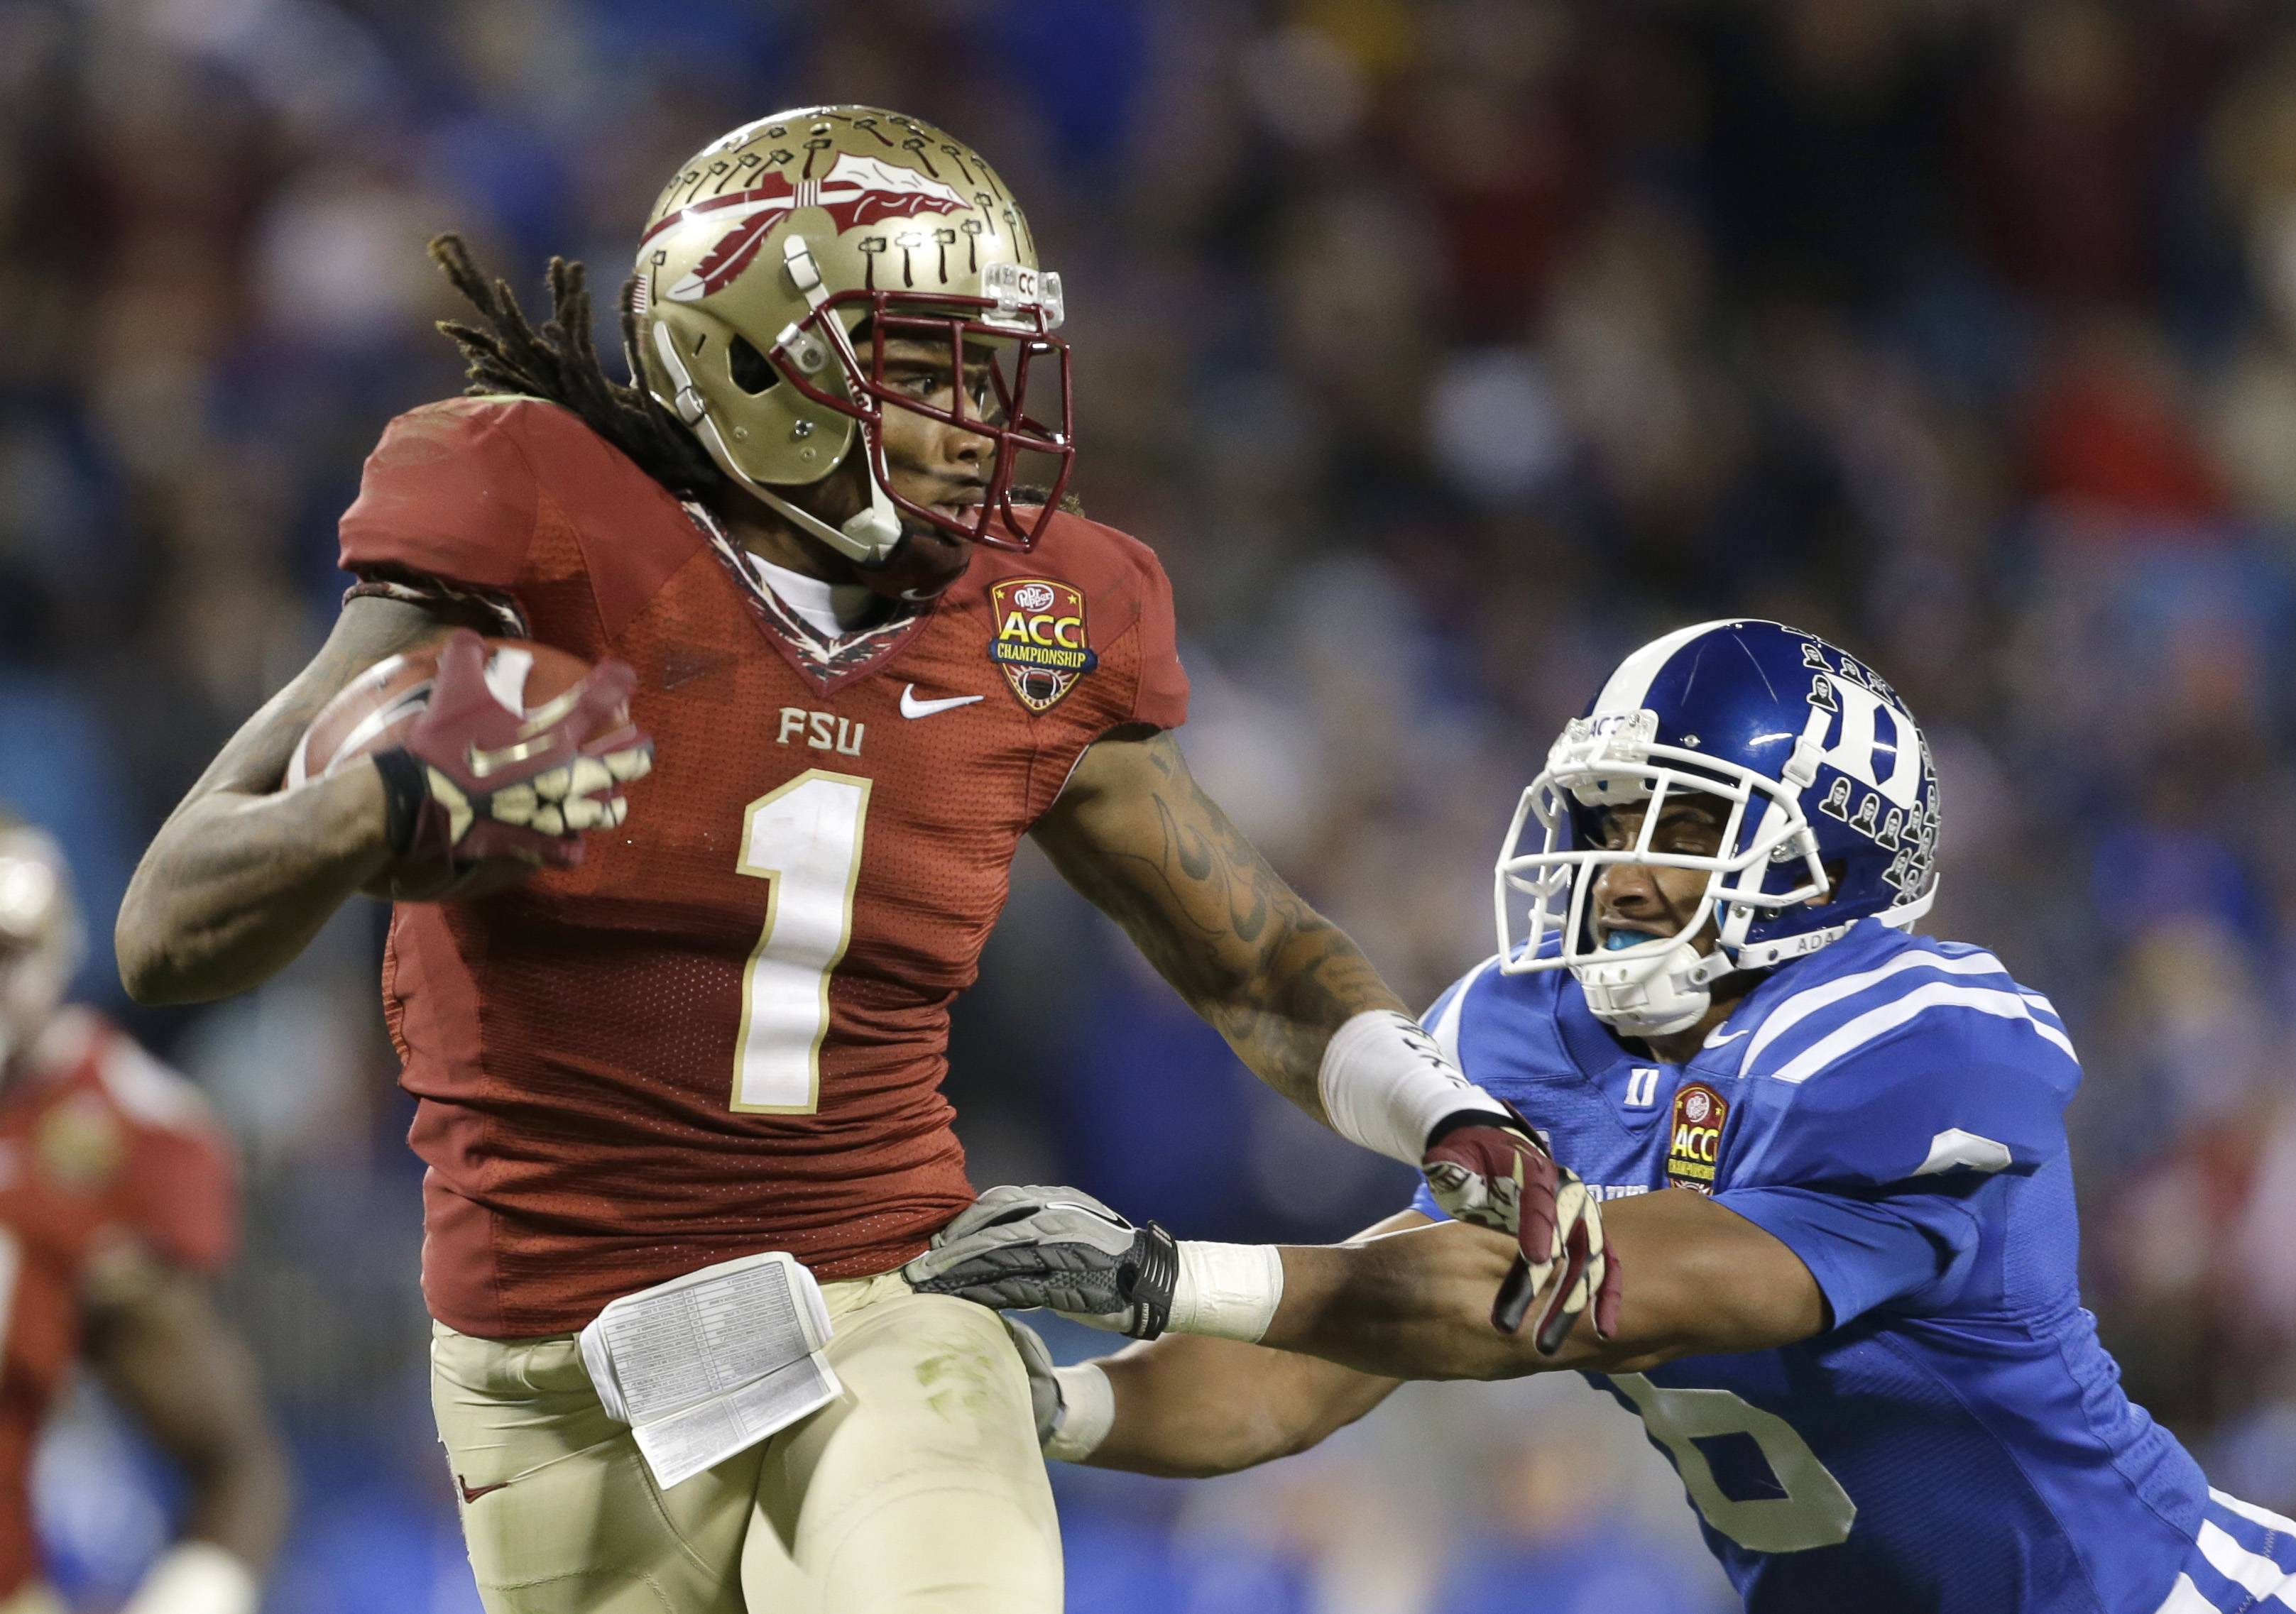 Florida State's Kelvin Benjamin (1) runs past Duke's Ross Cockrell (6) for a touchdown in the second half of the Atlantic Coast Conference Championship NCAA football game in Charlotte, N.C., Dec. 7, 2013.